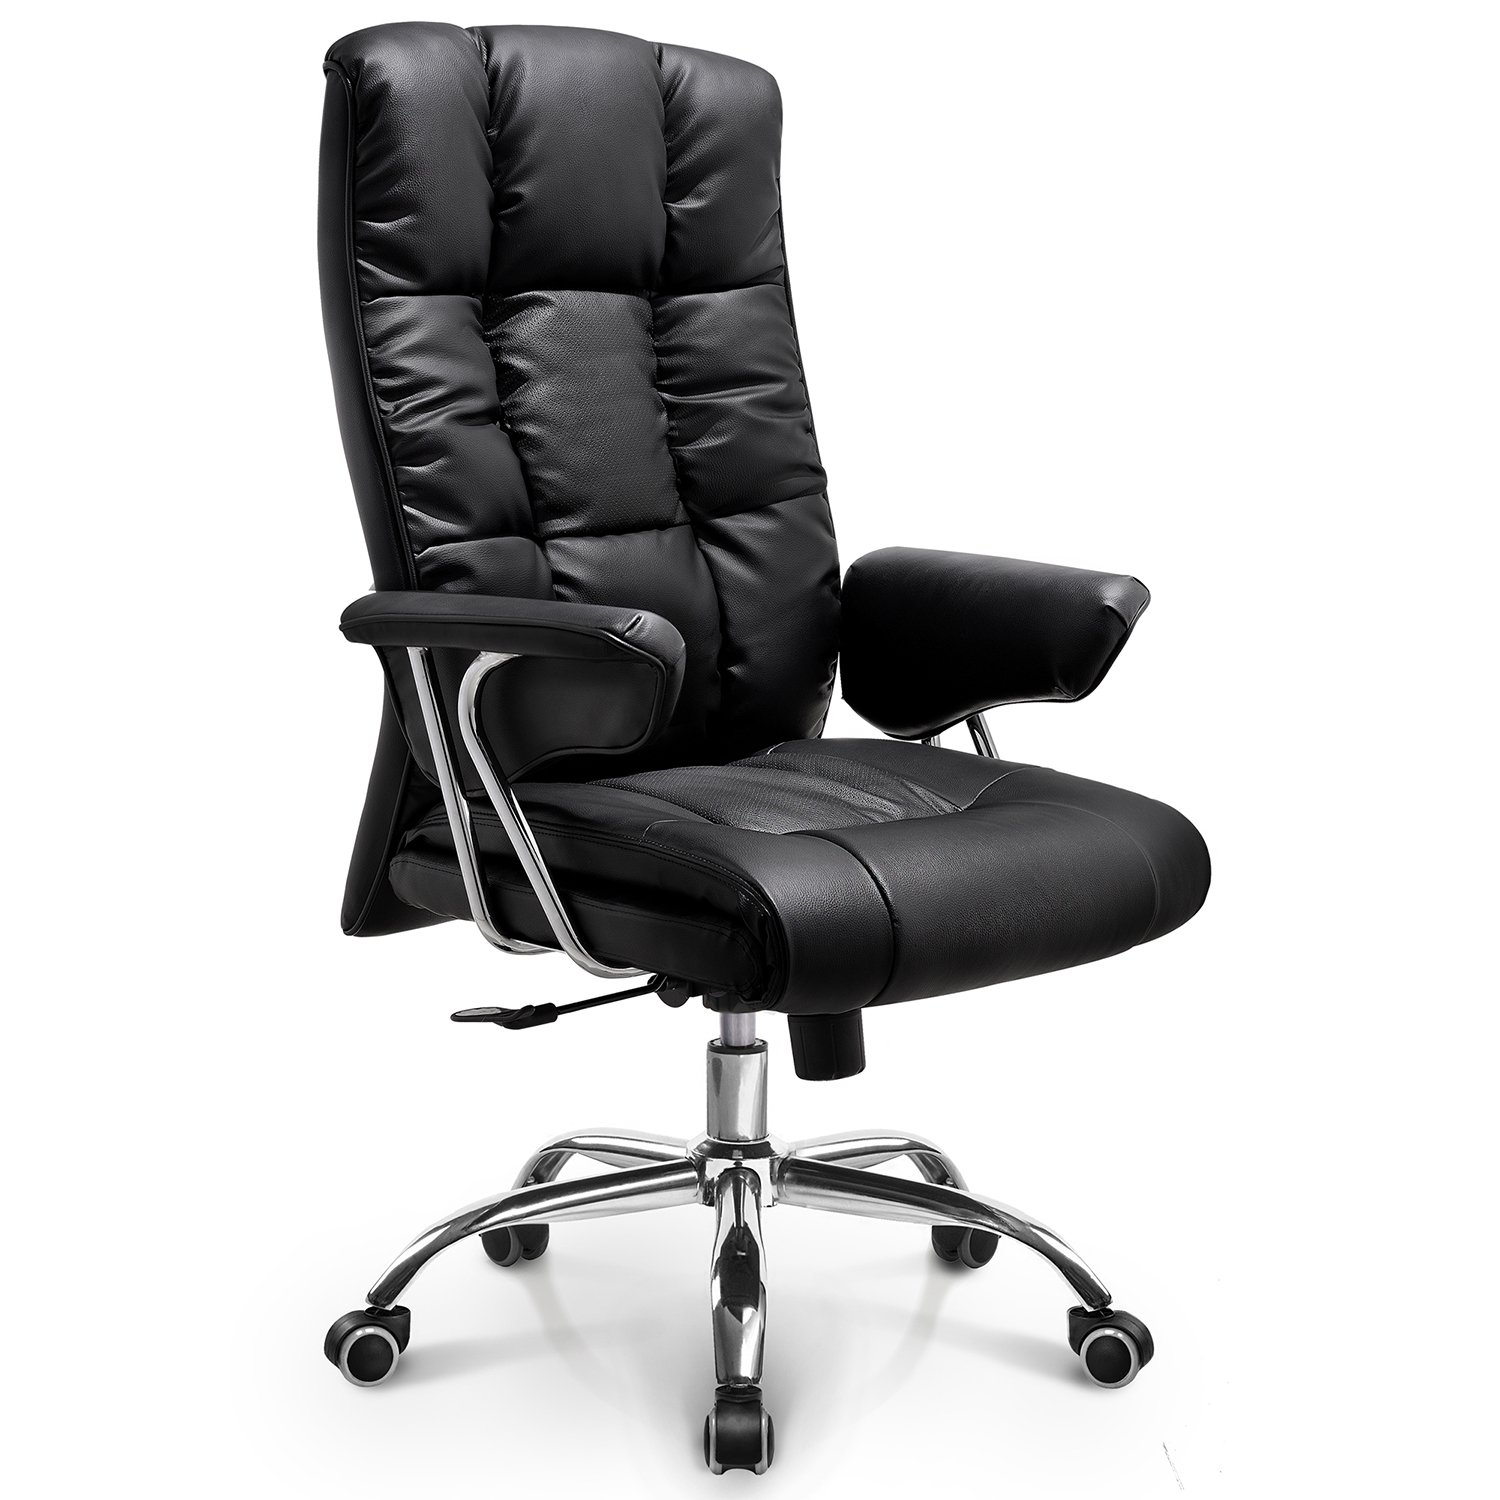 NEO CHAIR Office Chair Computer Desk Chair Gaming - Ergonomic High Back Cushion Lumbar Support with Wheels Comfortable Black Upholstered Leather Racing Seat Adjustable Swivel Rolling Home Executive